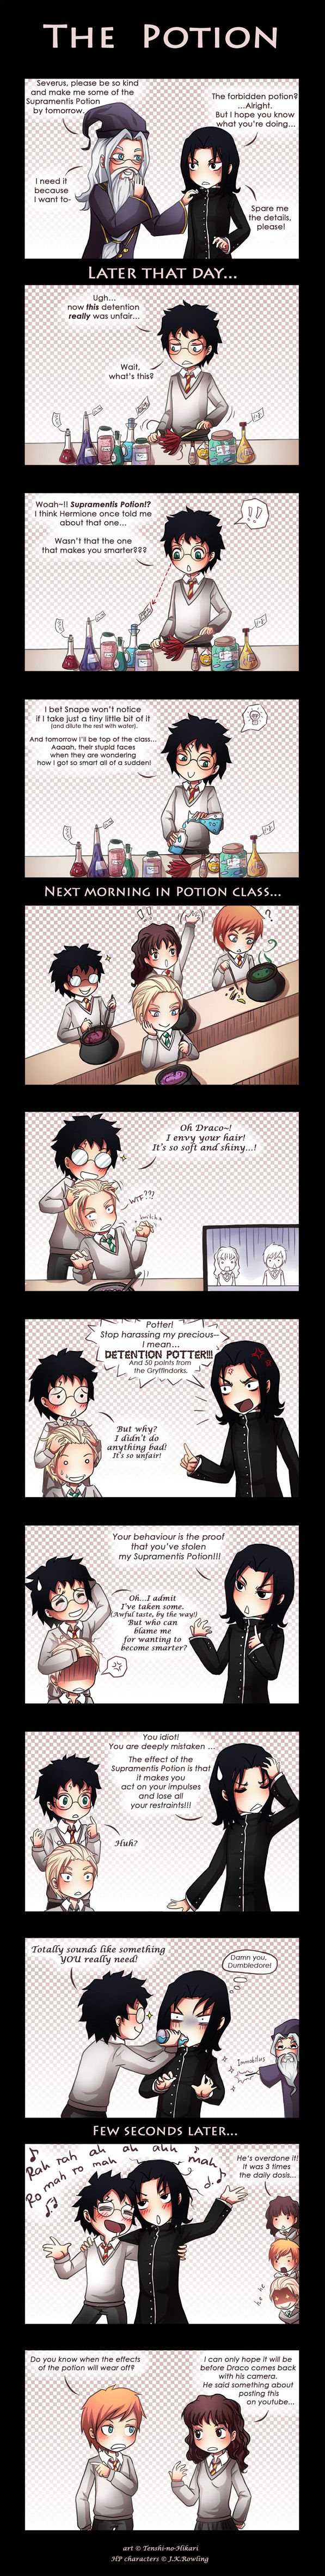 HP - Harry Potter and Severus Snape - The potion by Tenshi-no-Hikari